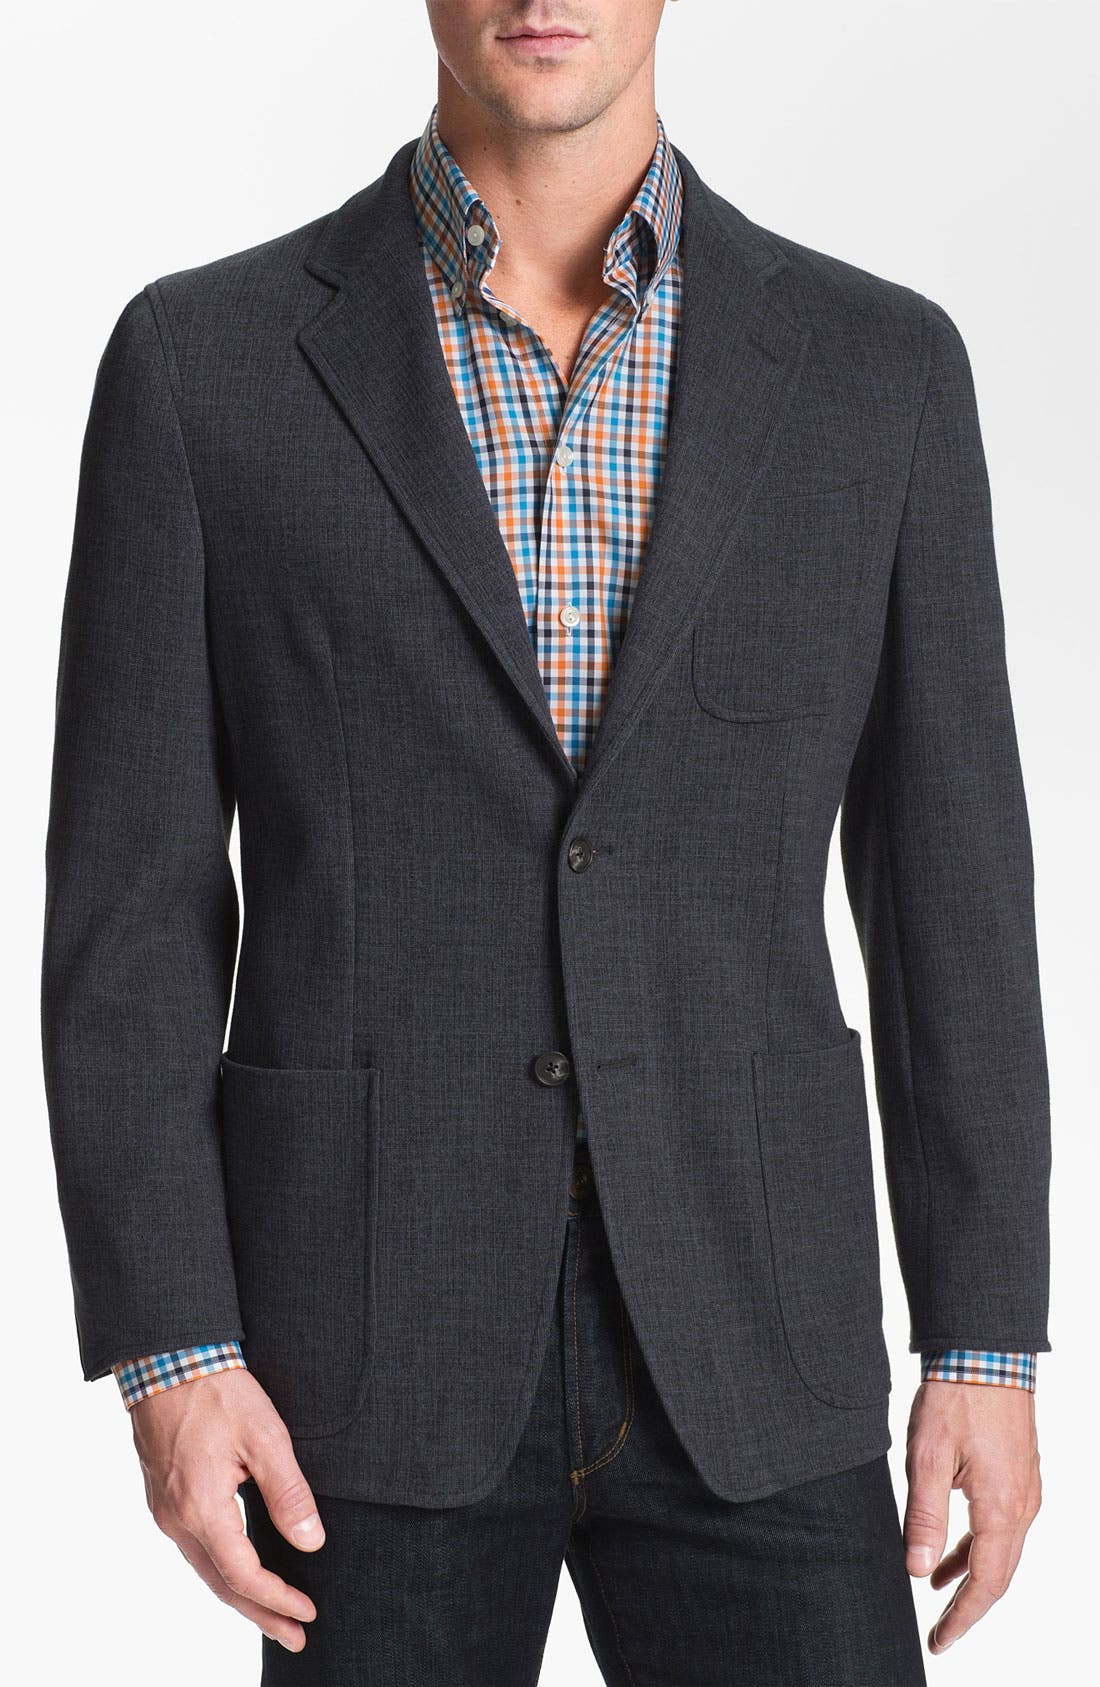 Alternate Image 1 Selected - Joseph Abboud Cotton Blend Blazer